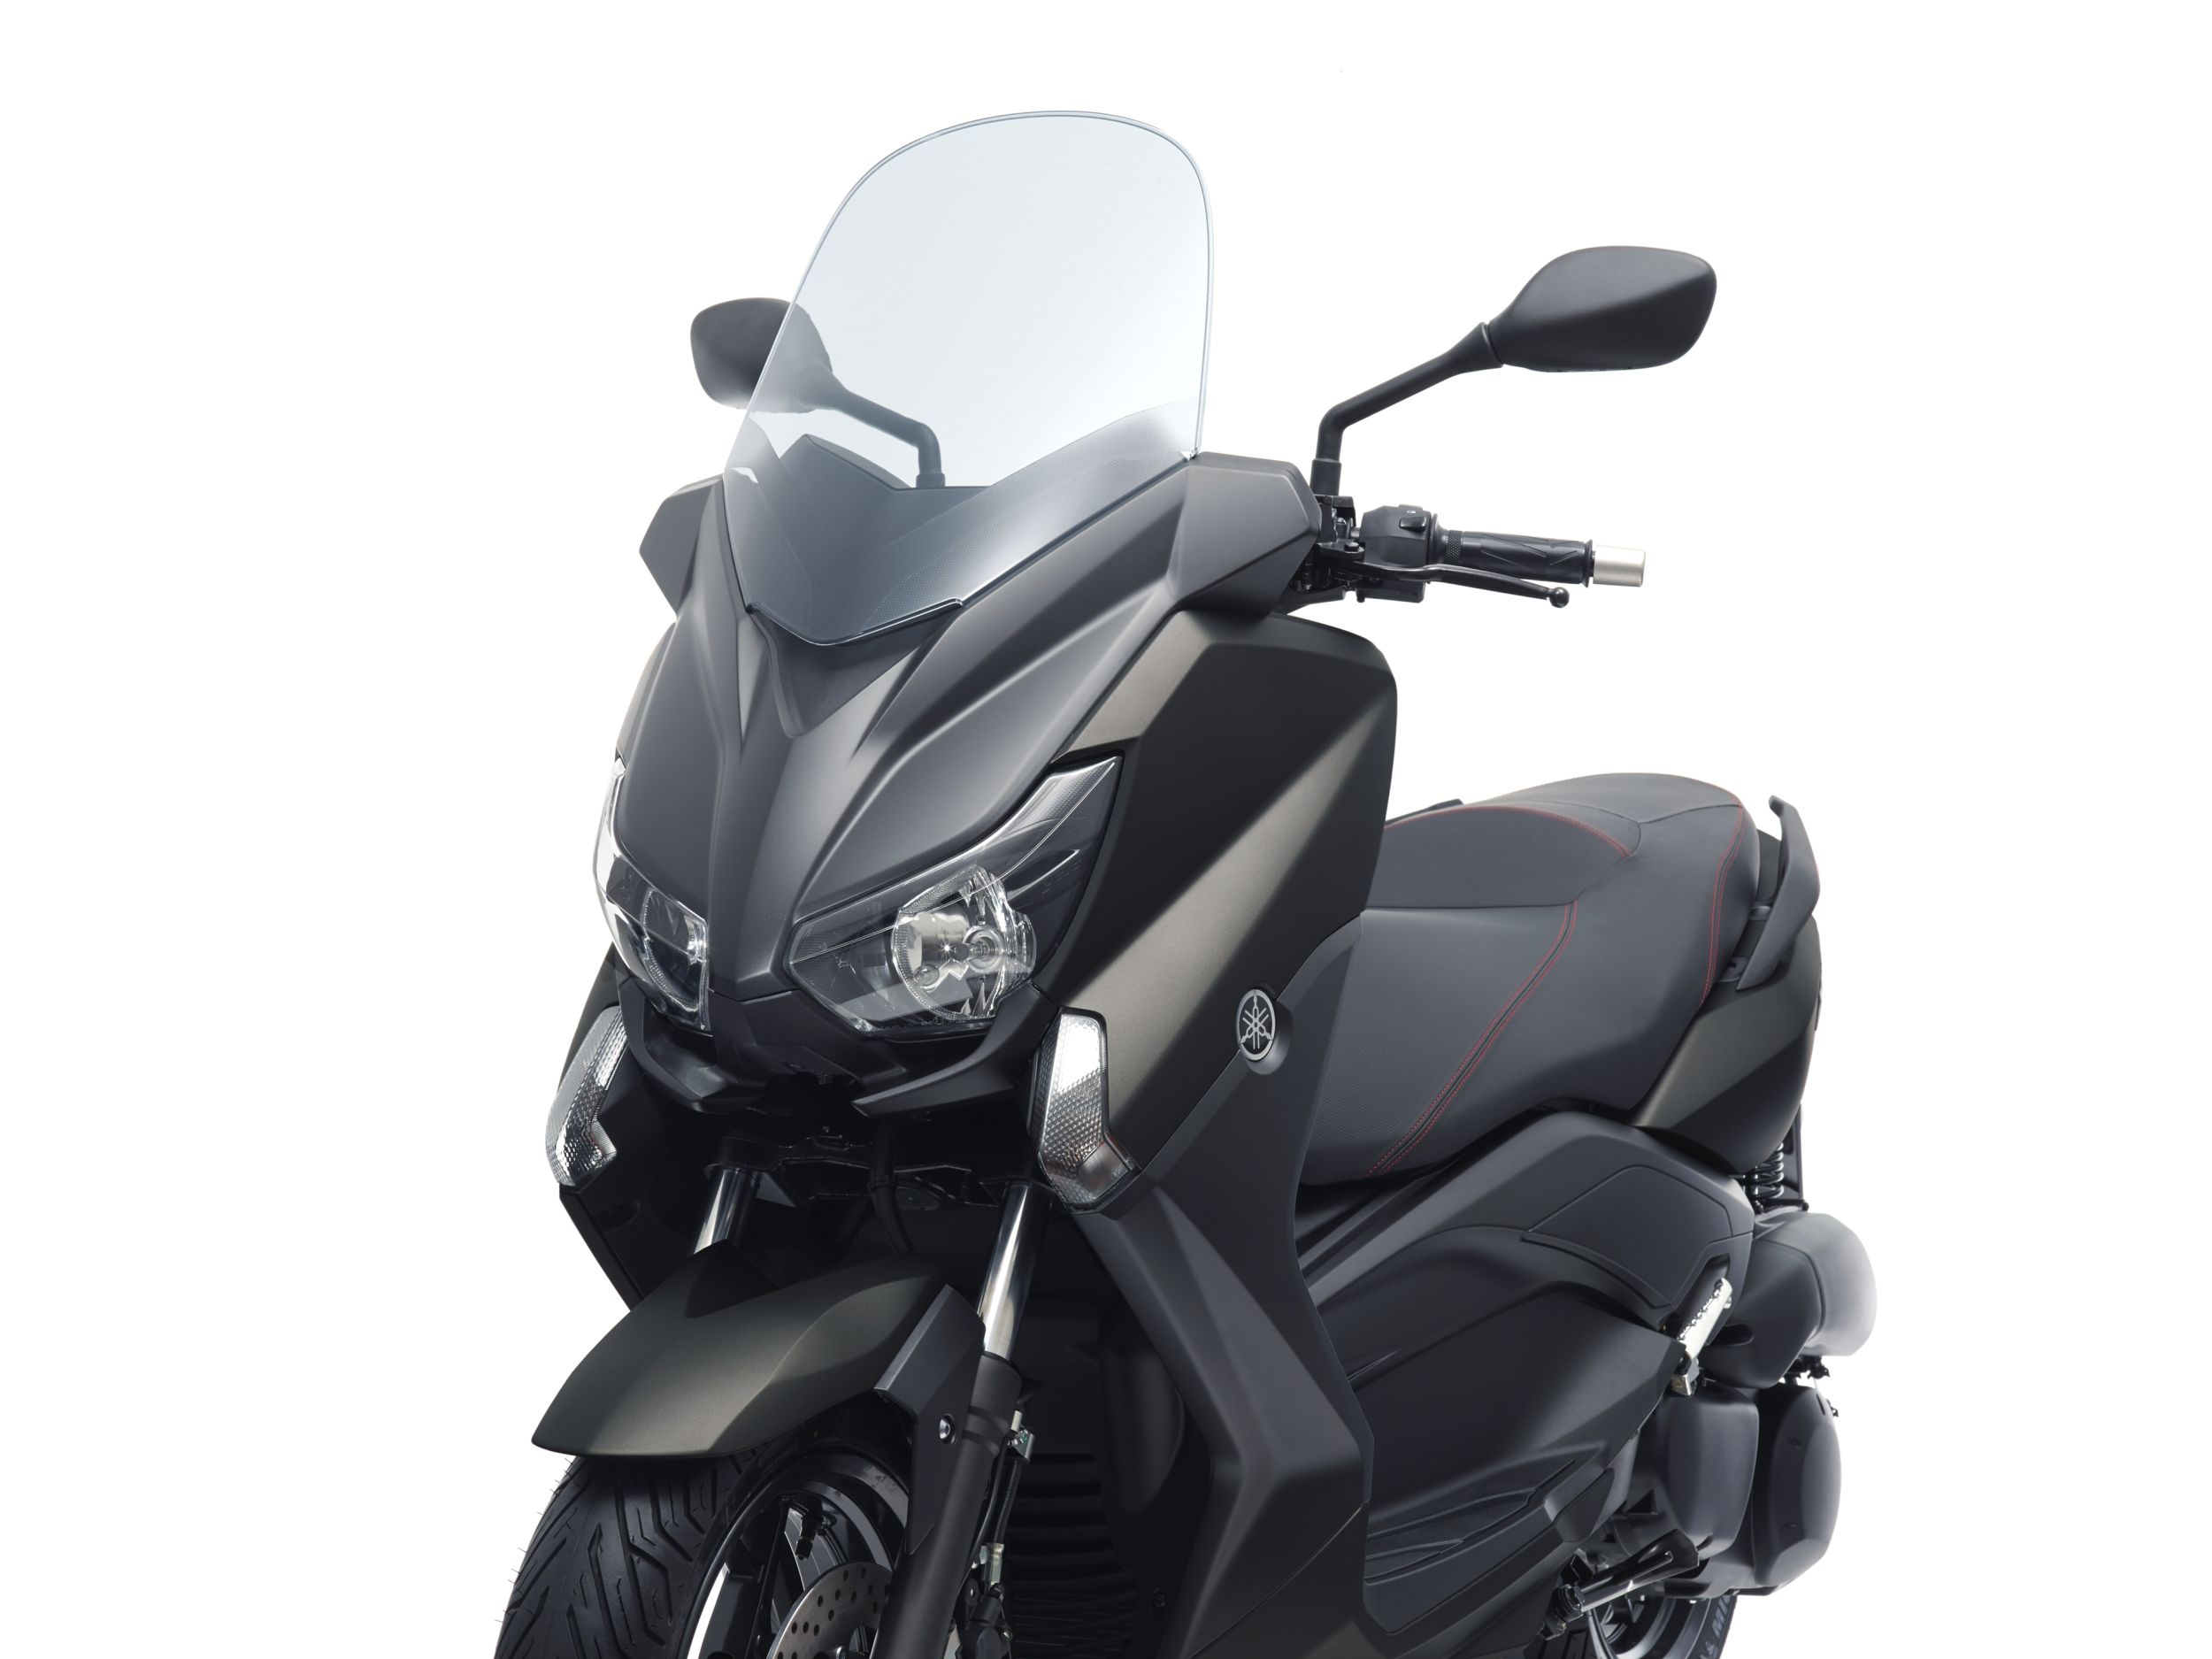 gebrauchte yamaha x max 125 motorr der kaufen. Black Bedroom Furniture Sets. Home Design Ideas